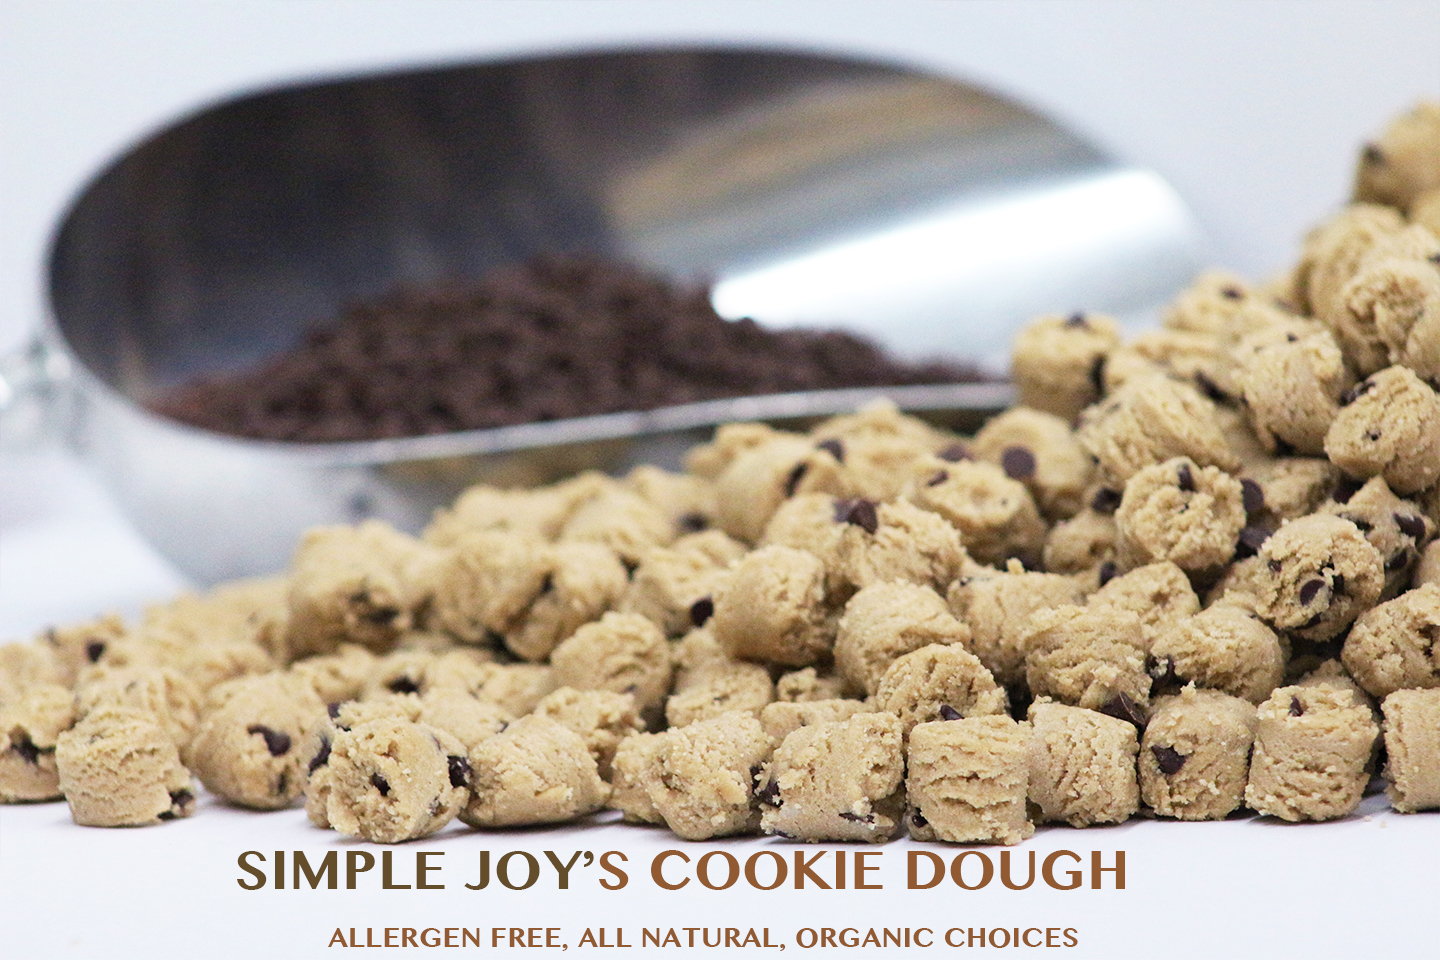 SImple Joy's Gluten-Free Cookie Dough, InclusiLife, Inc. Marcia Pollard